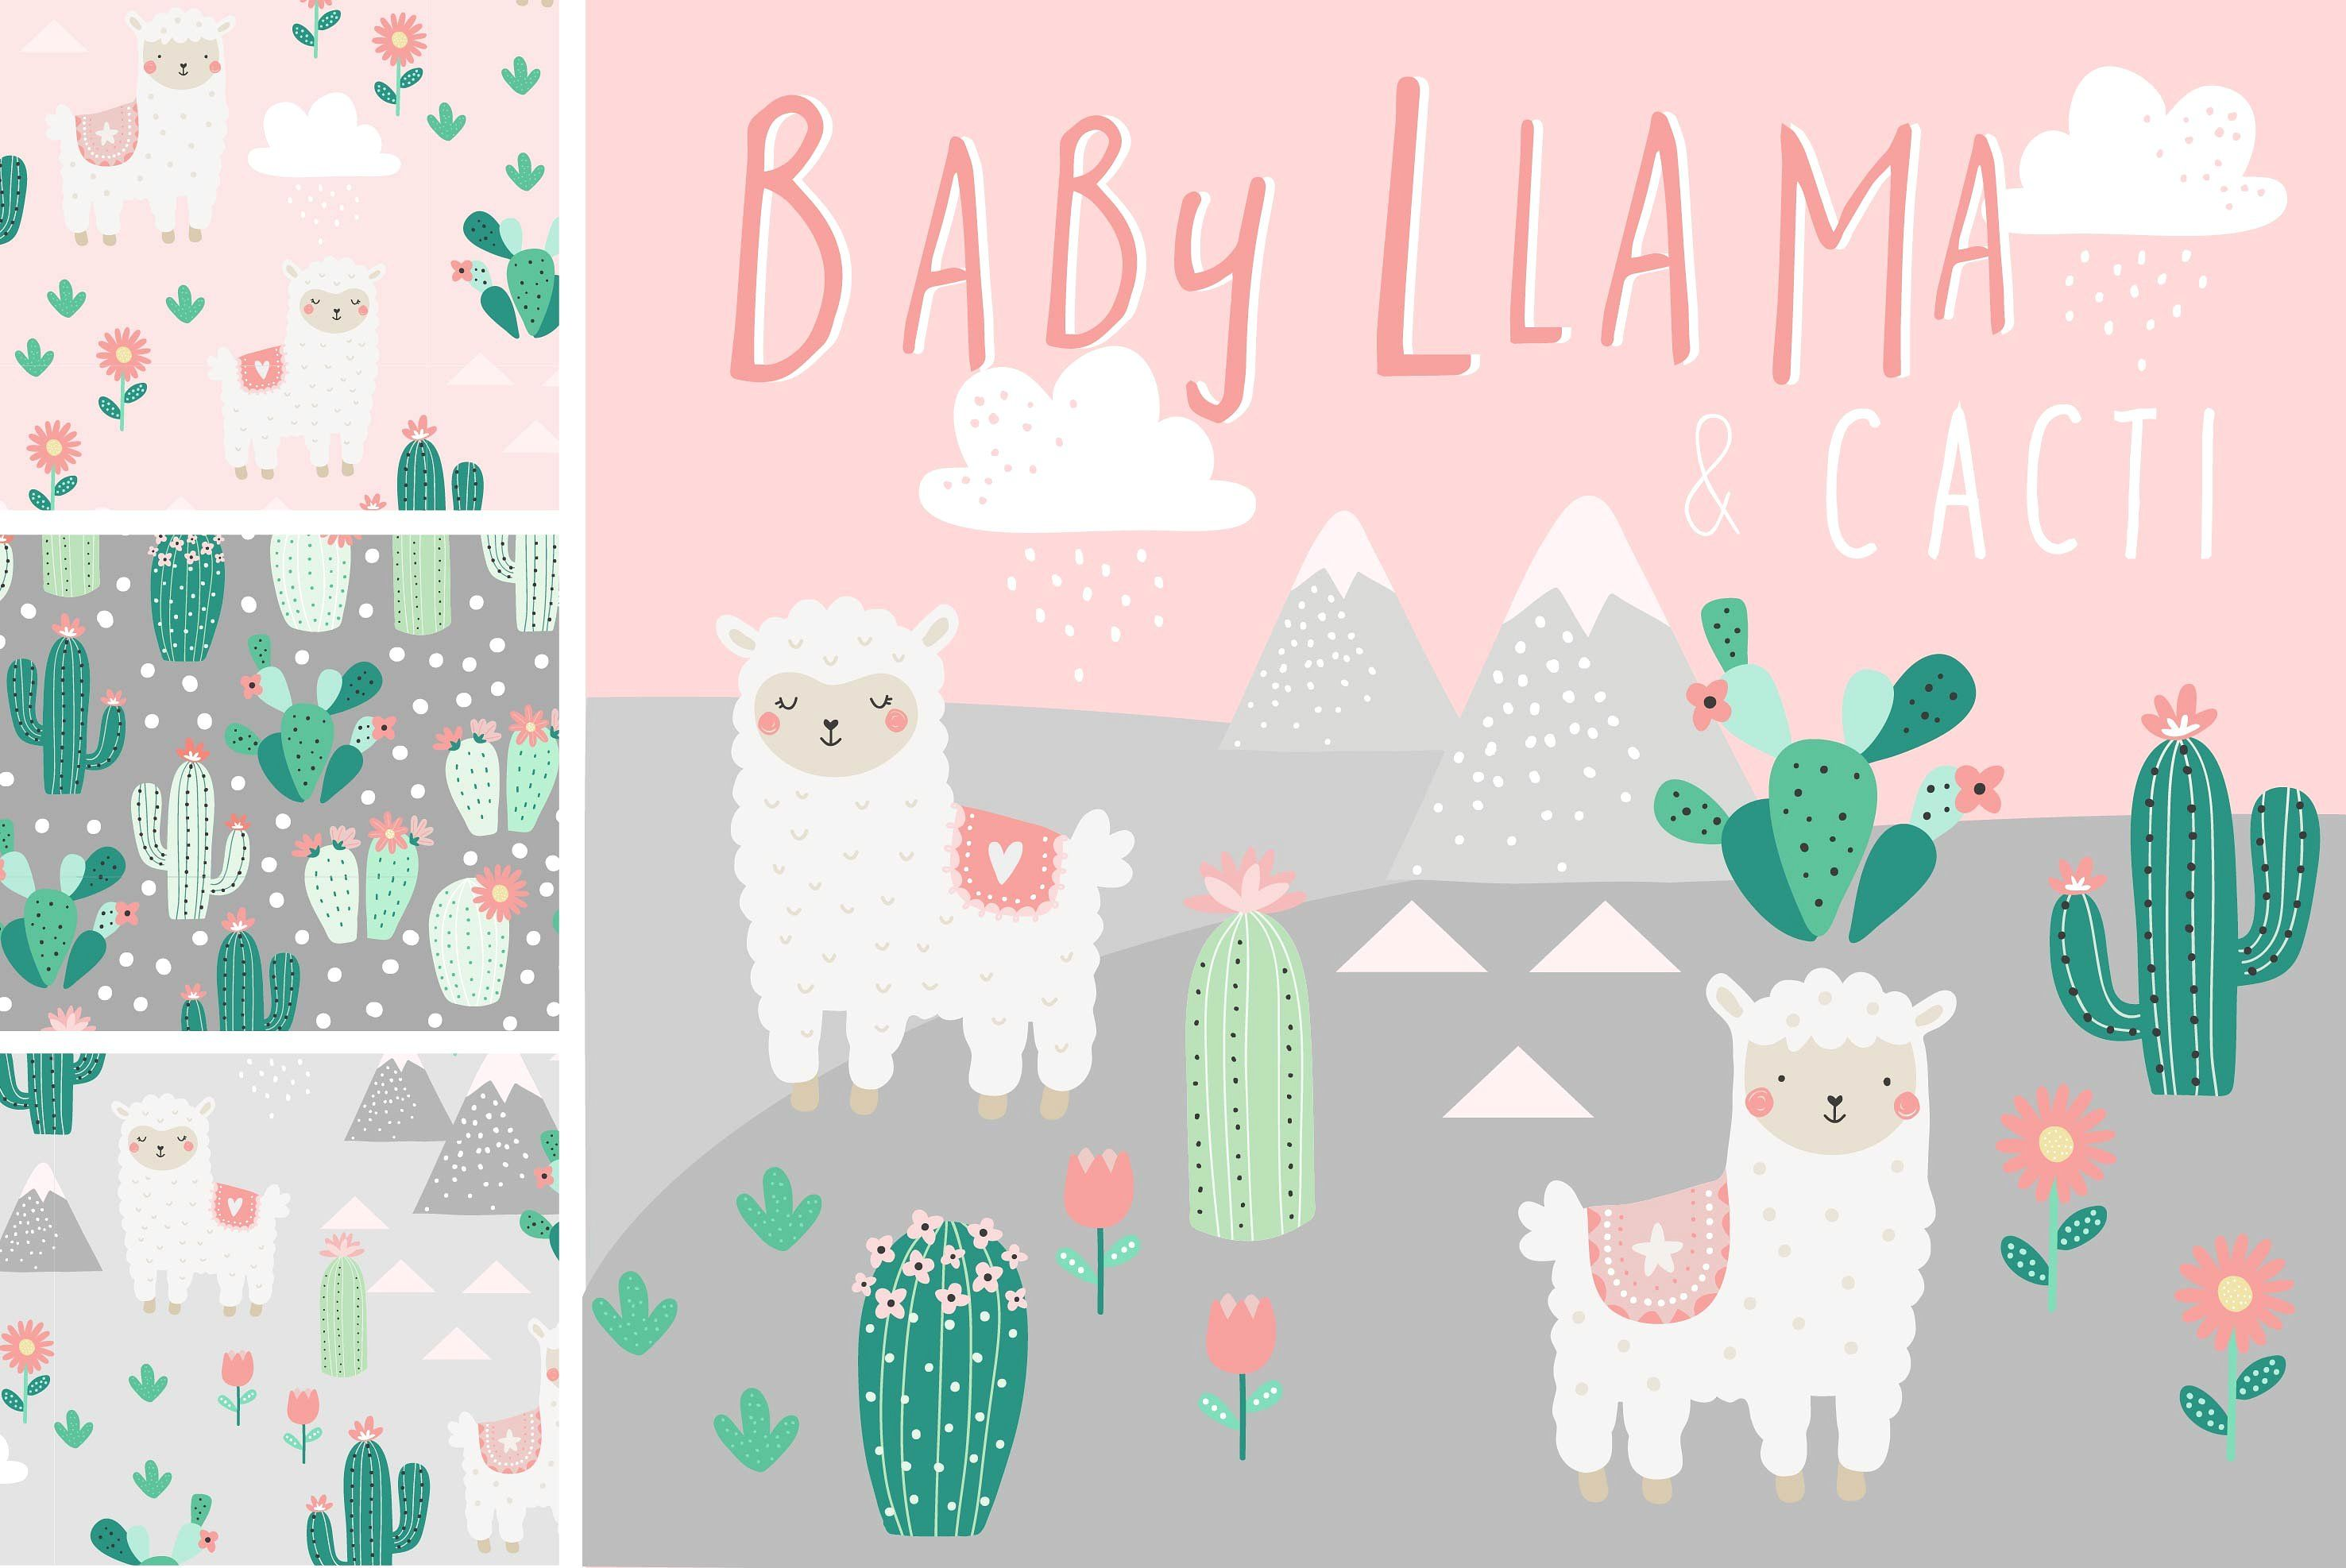 Cactus Porn Dibujo a cute collection of baby llama and cacti illustrations with